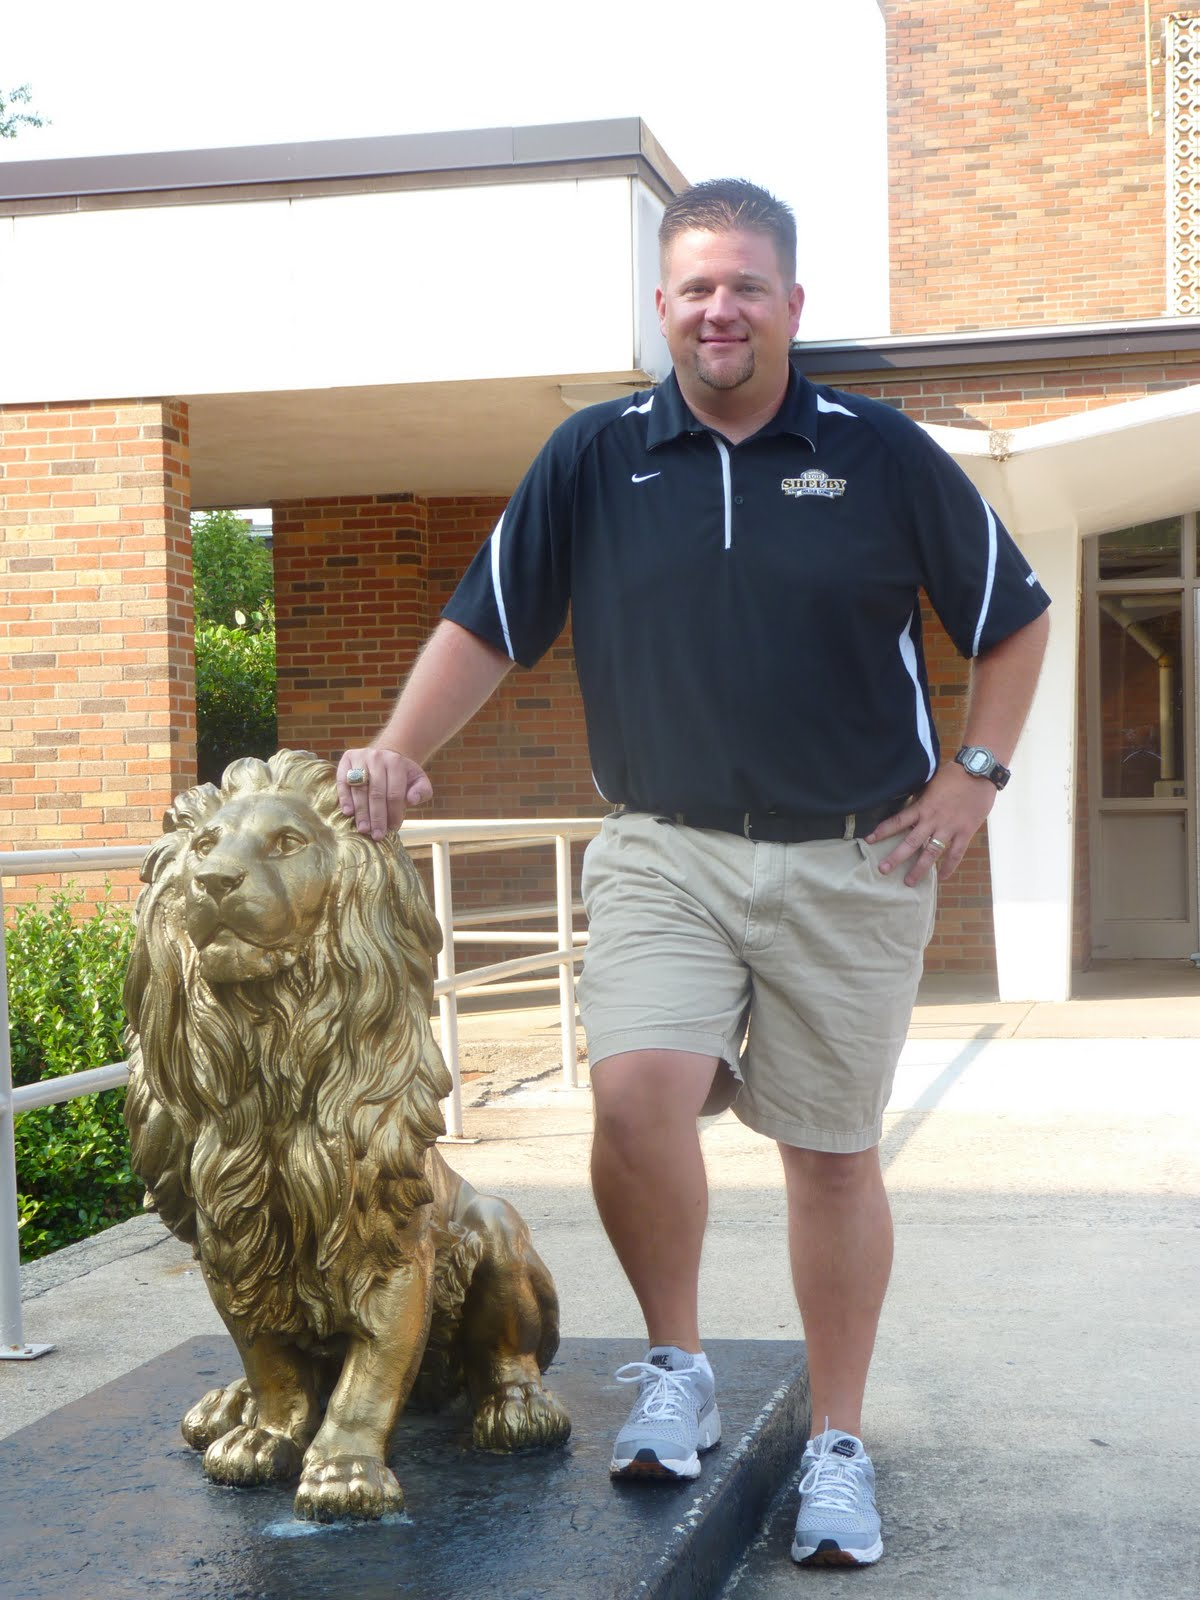 Prep insiders june 2011 former shelby defensive coordinator lance ware has been promoted to head coach of the golden lions ware defensive coordinator at shelby since 2005 altavistaventures Gallery